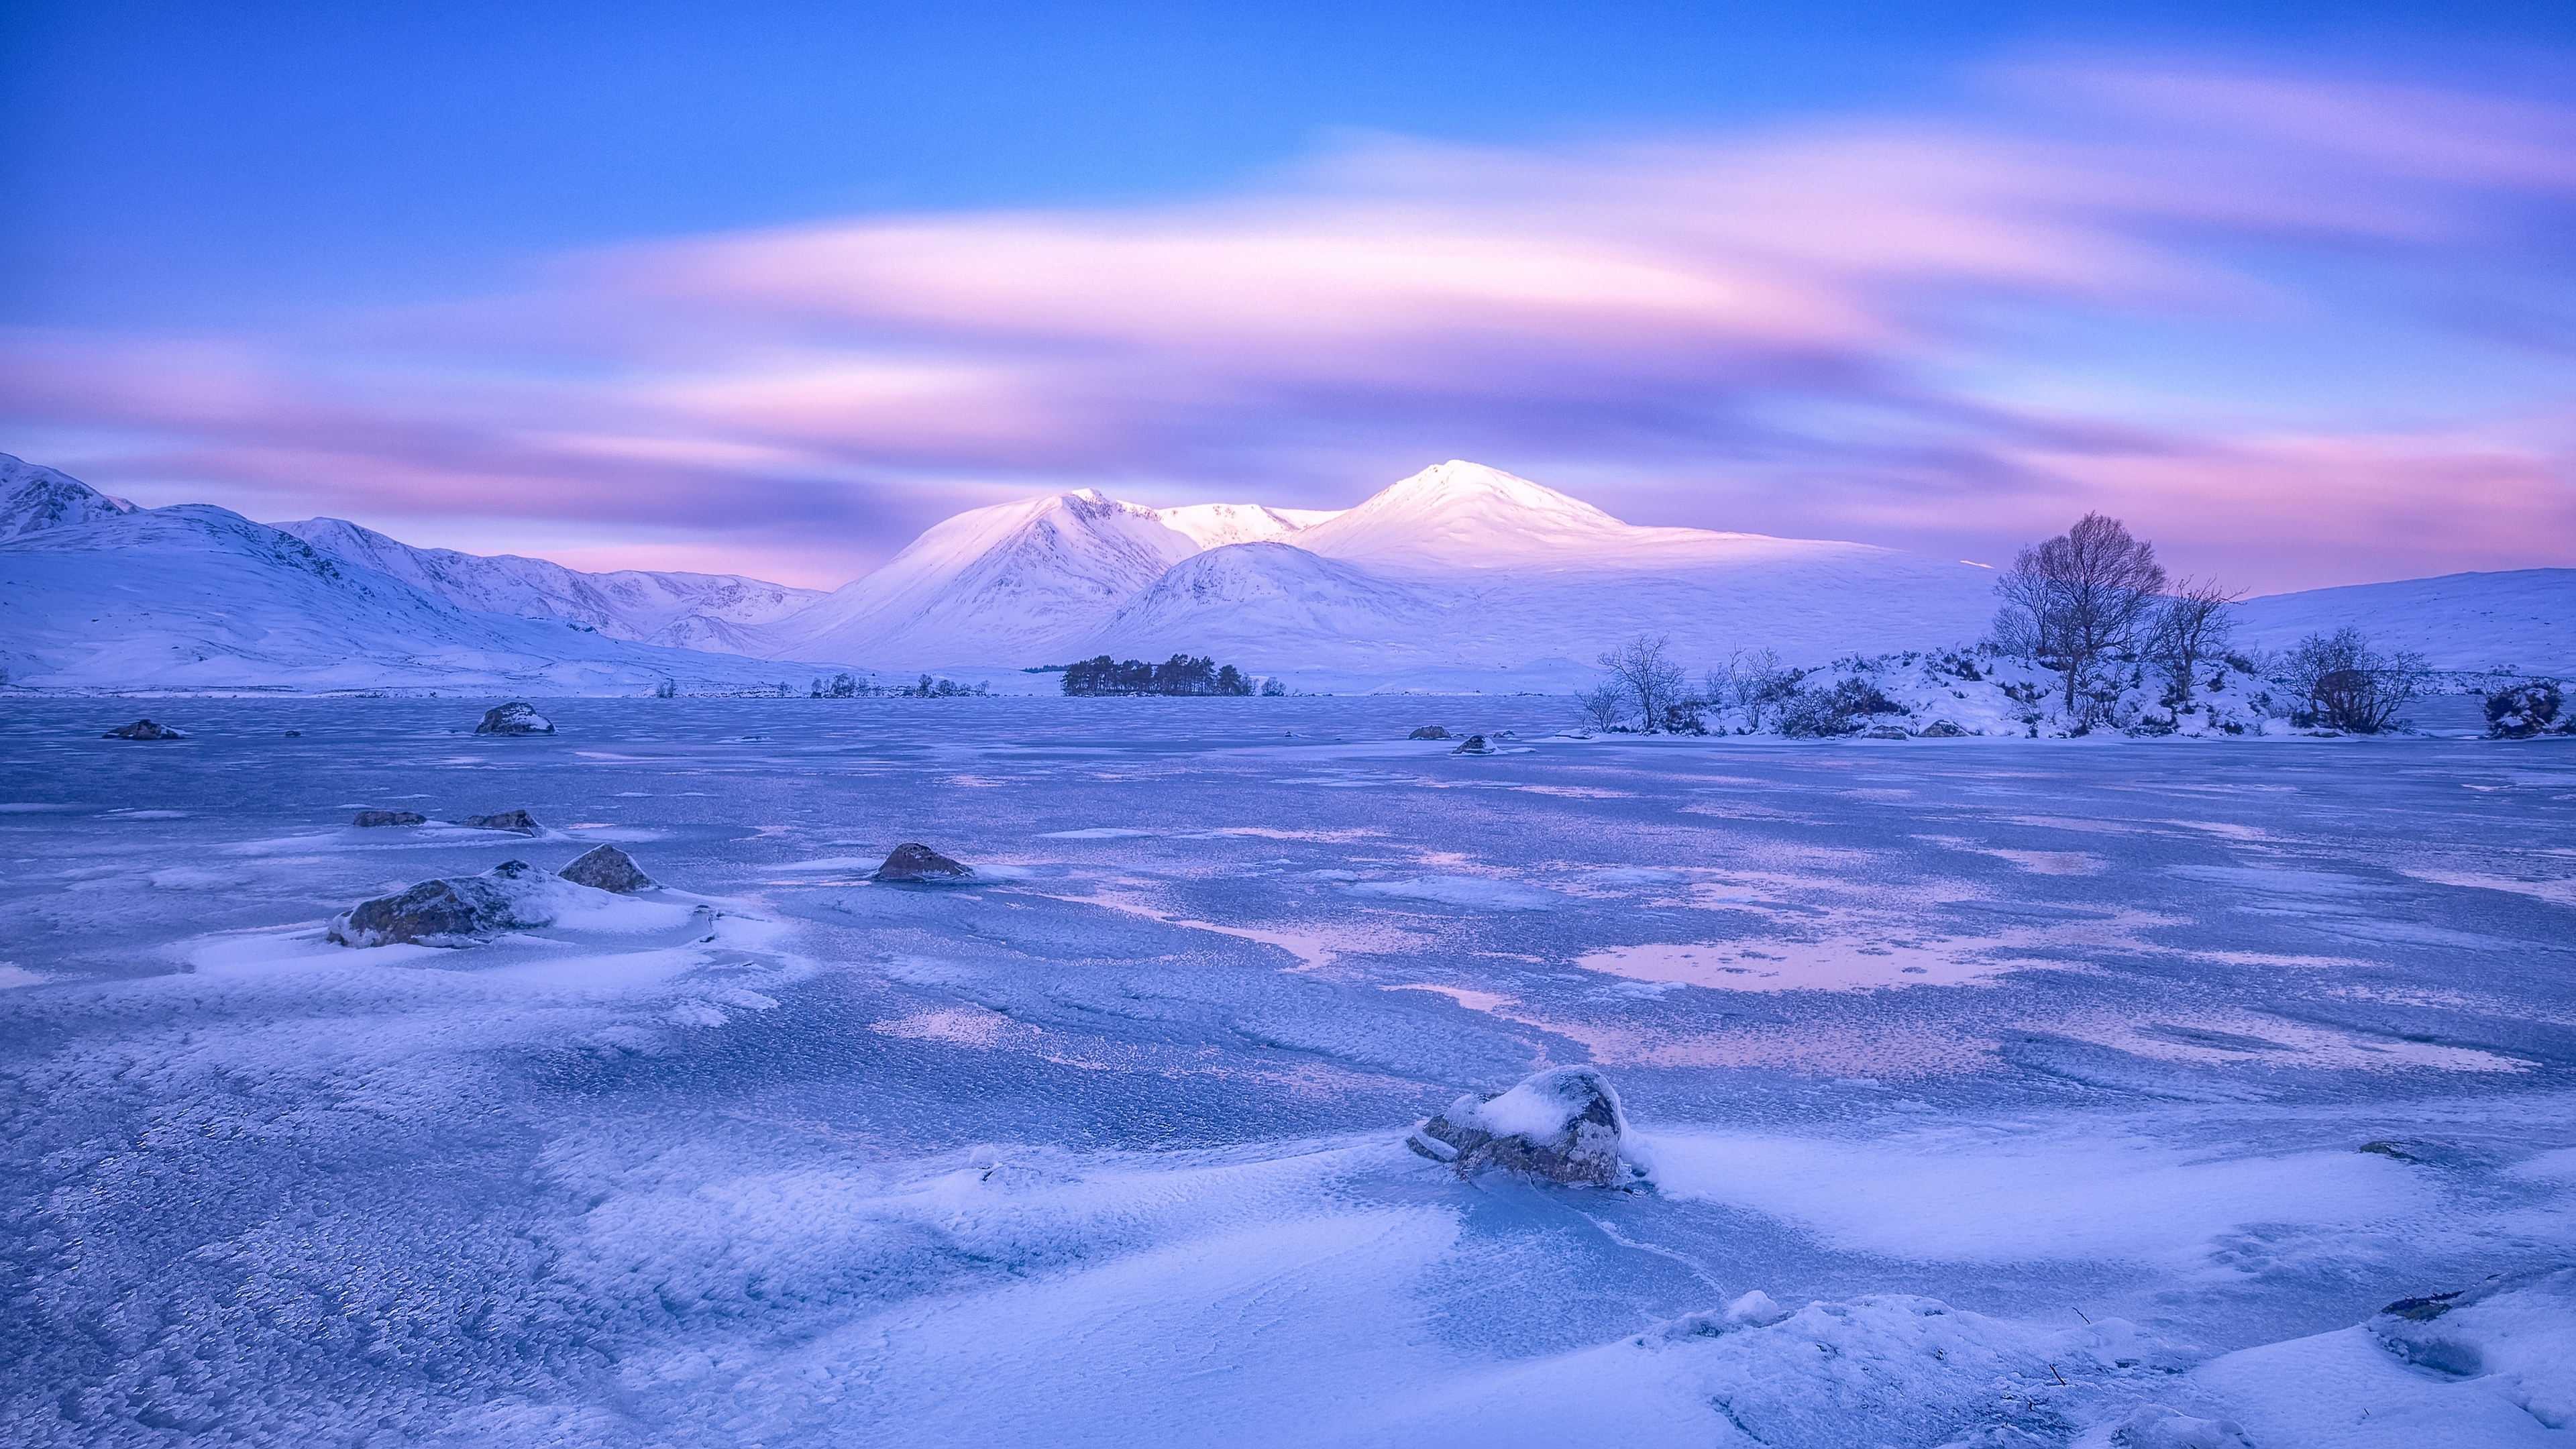 mountains winter sky pink snow blue loch lomond rannoch moor scotland 4k 1541116820 - mountains, winter, sky, pink, snow, blue, loch lomond, rannoch moor, scotland 4k - Winter, Sky, Mountains